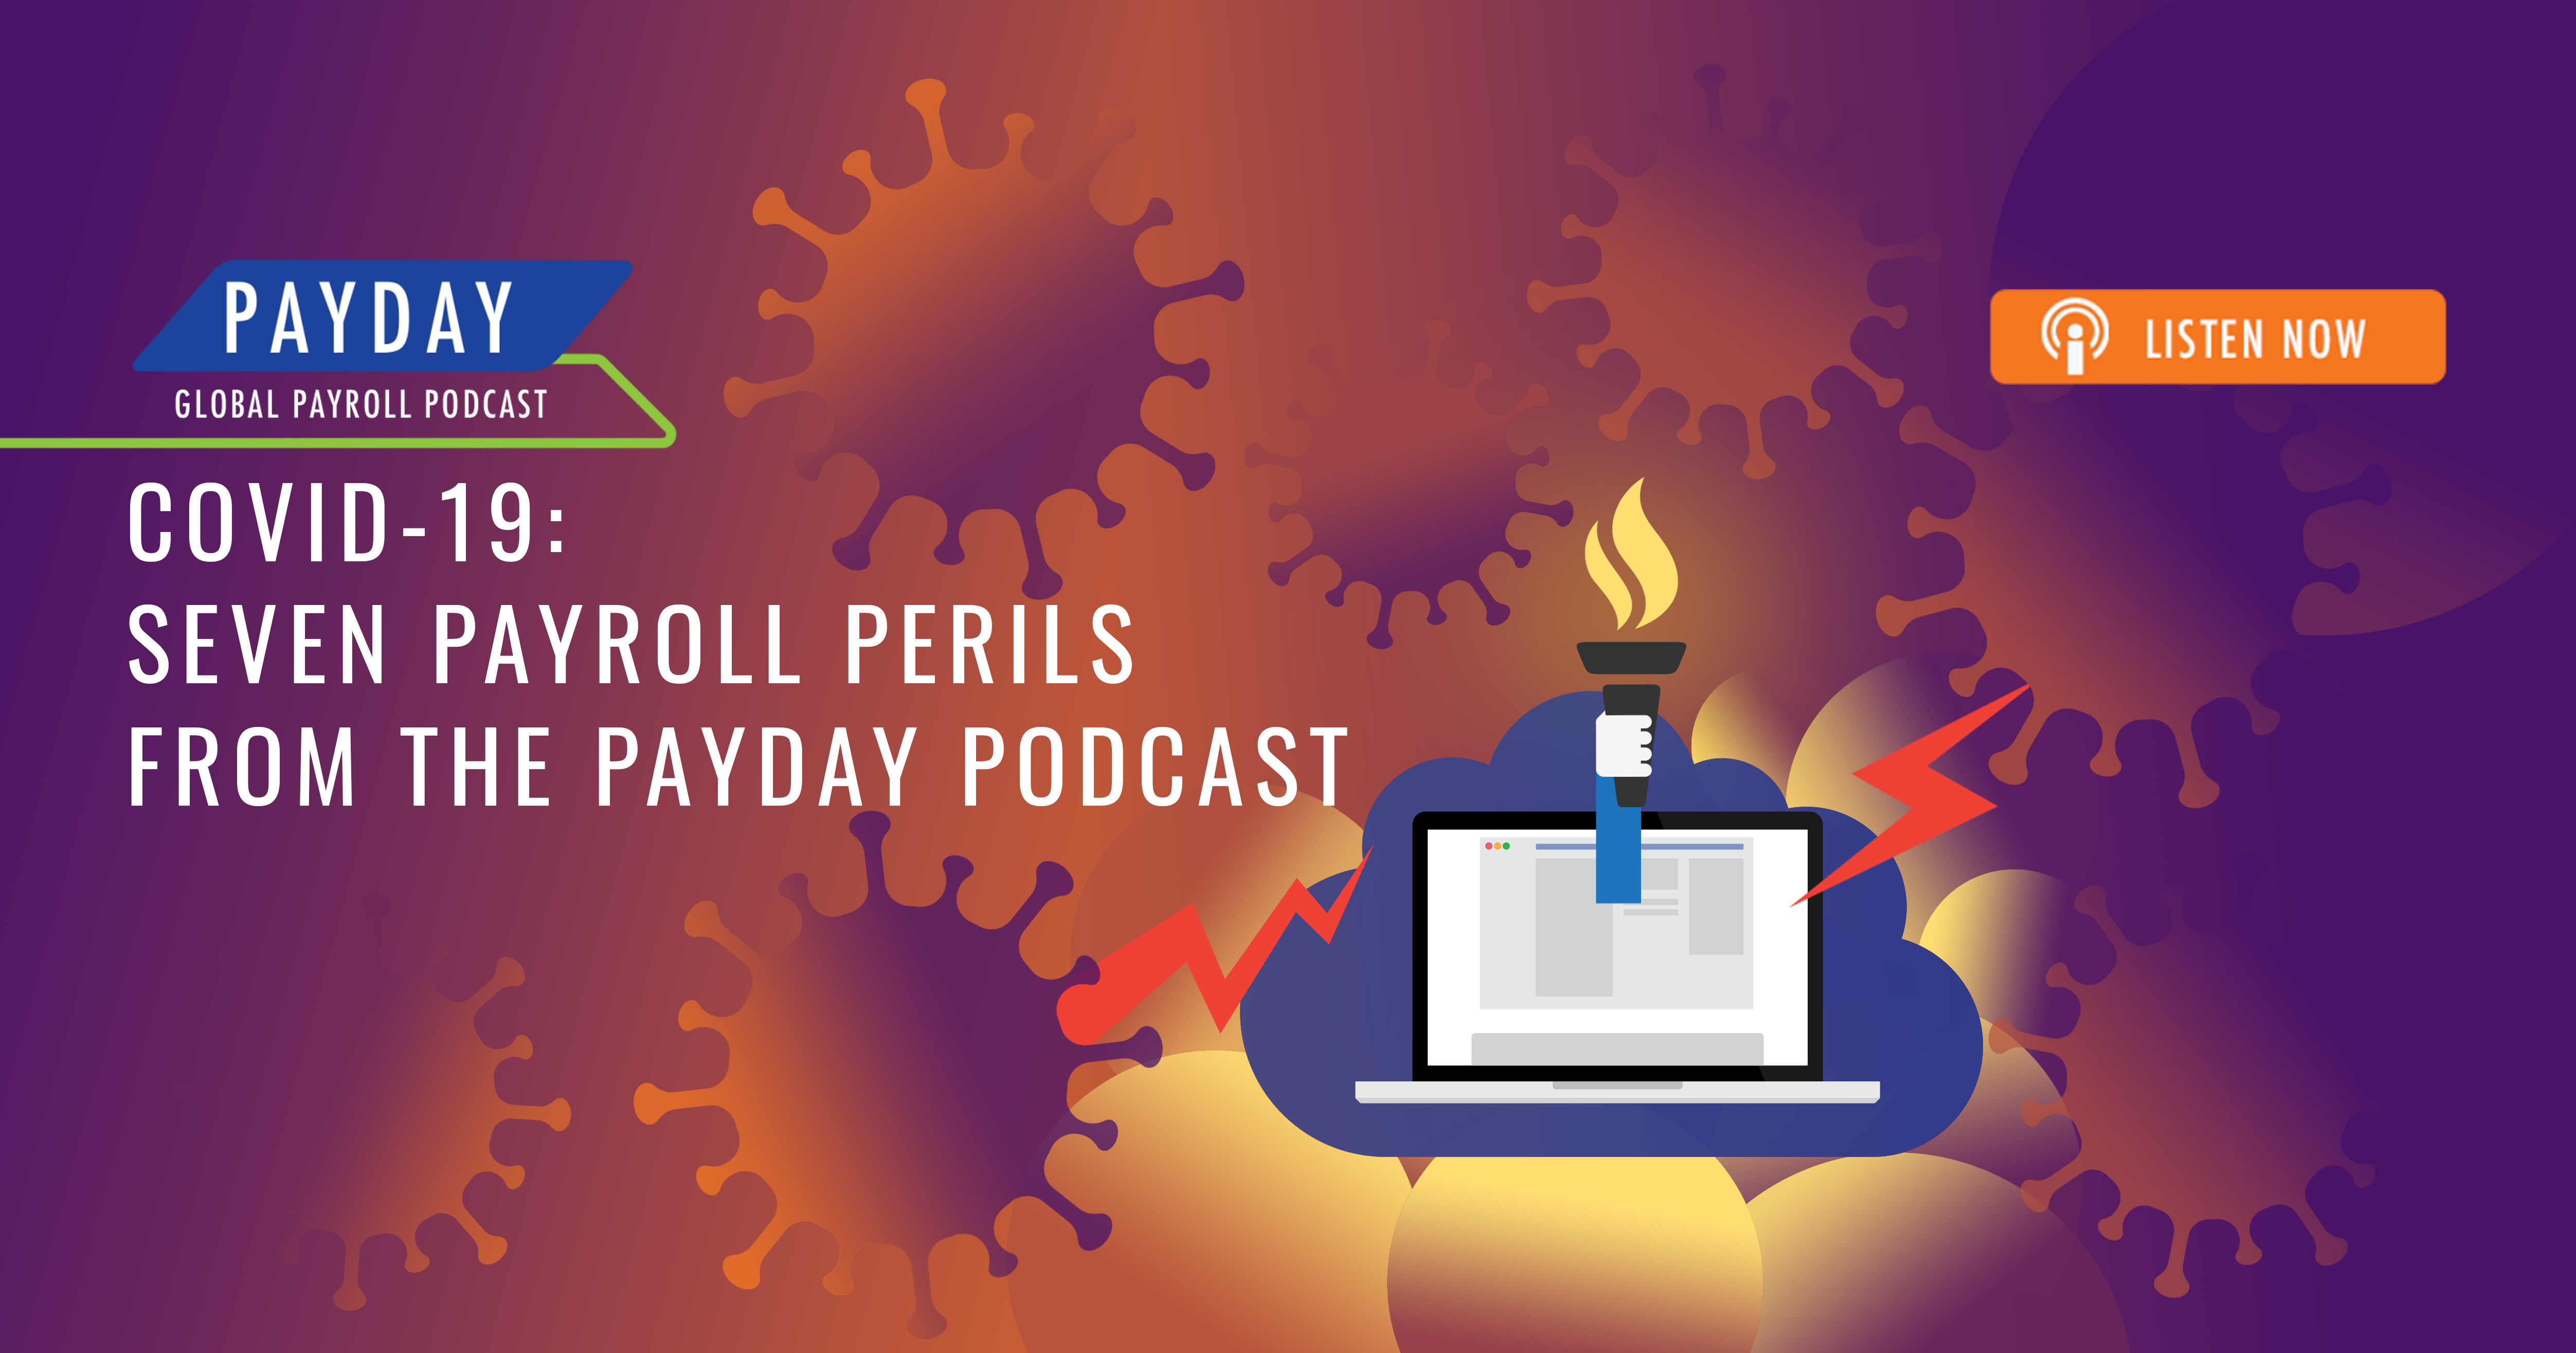 COVID-19: Seven Payroll Perils from the Payday Podcast